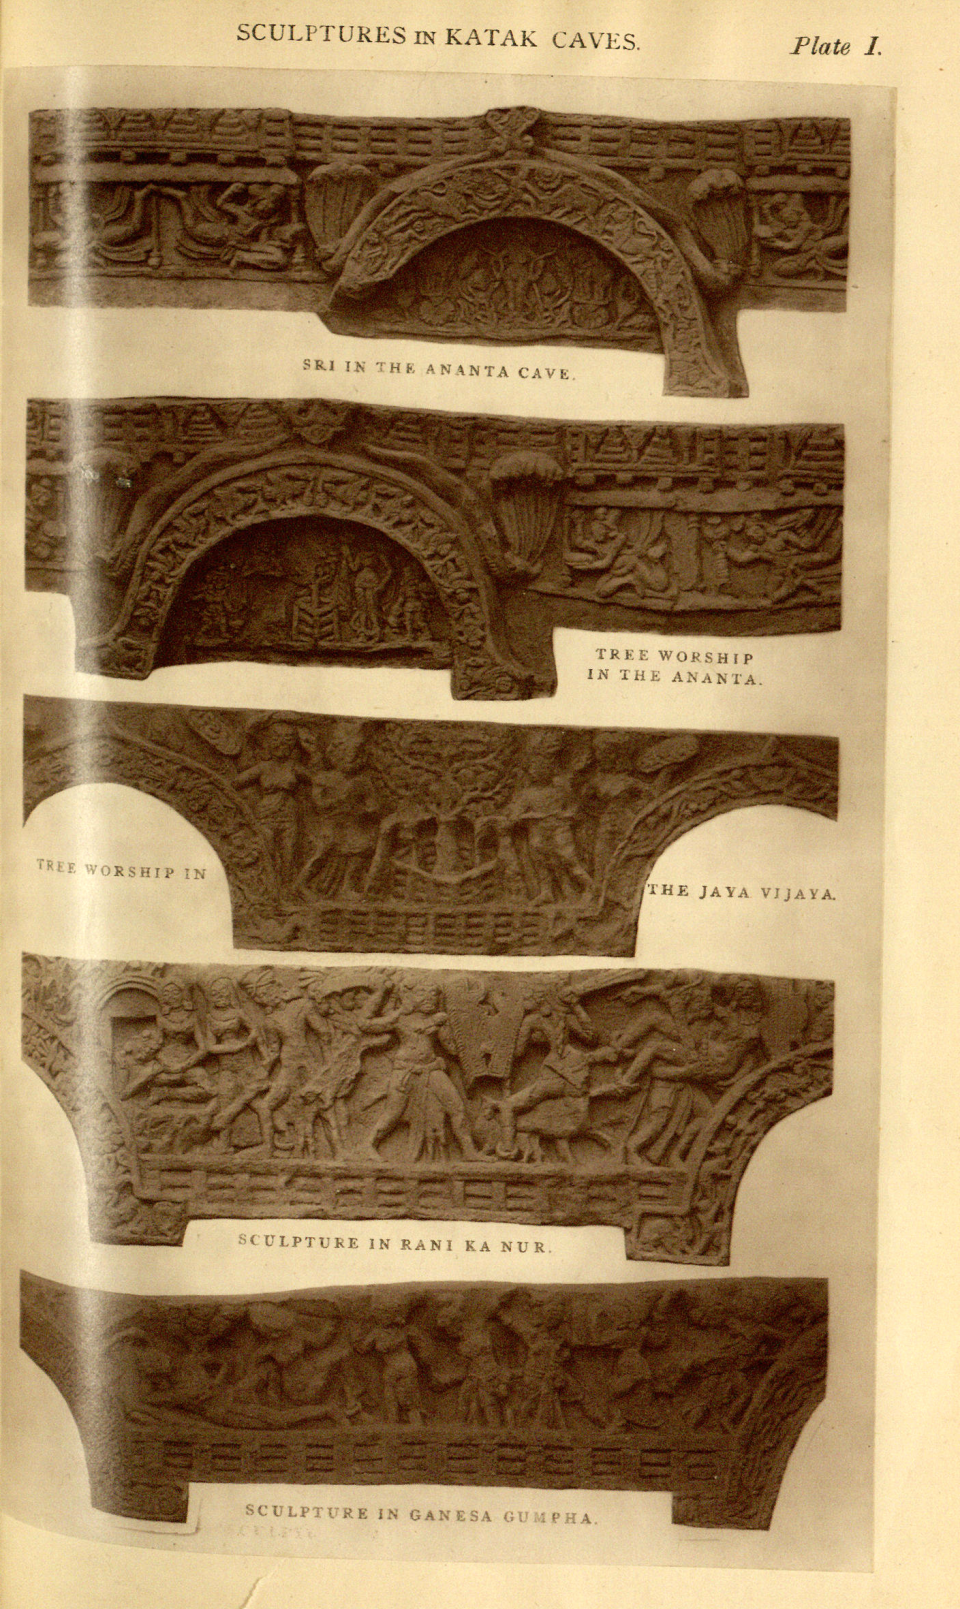 Plate I - Scuptures in Katak Caves